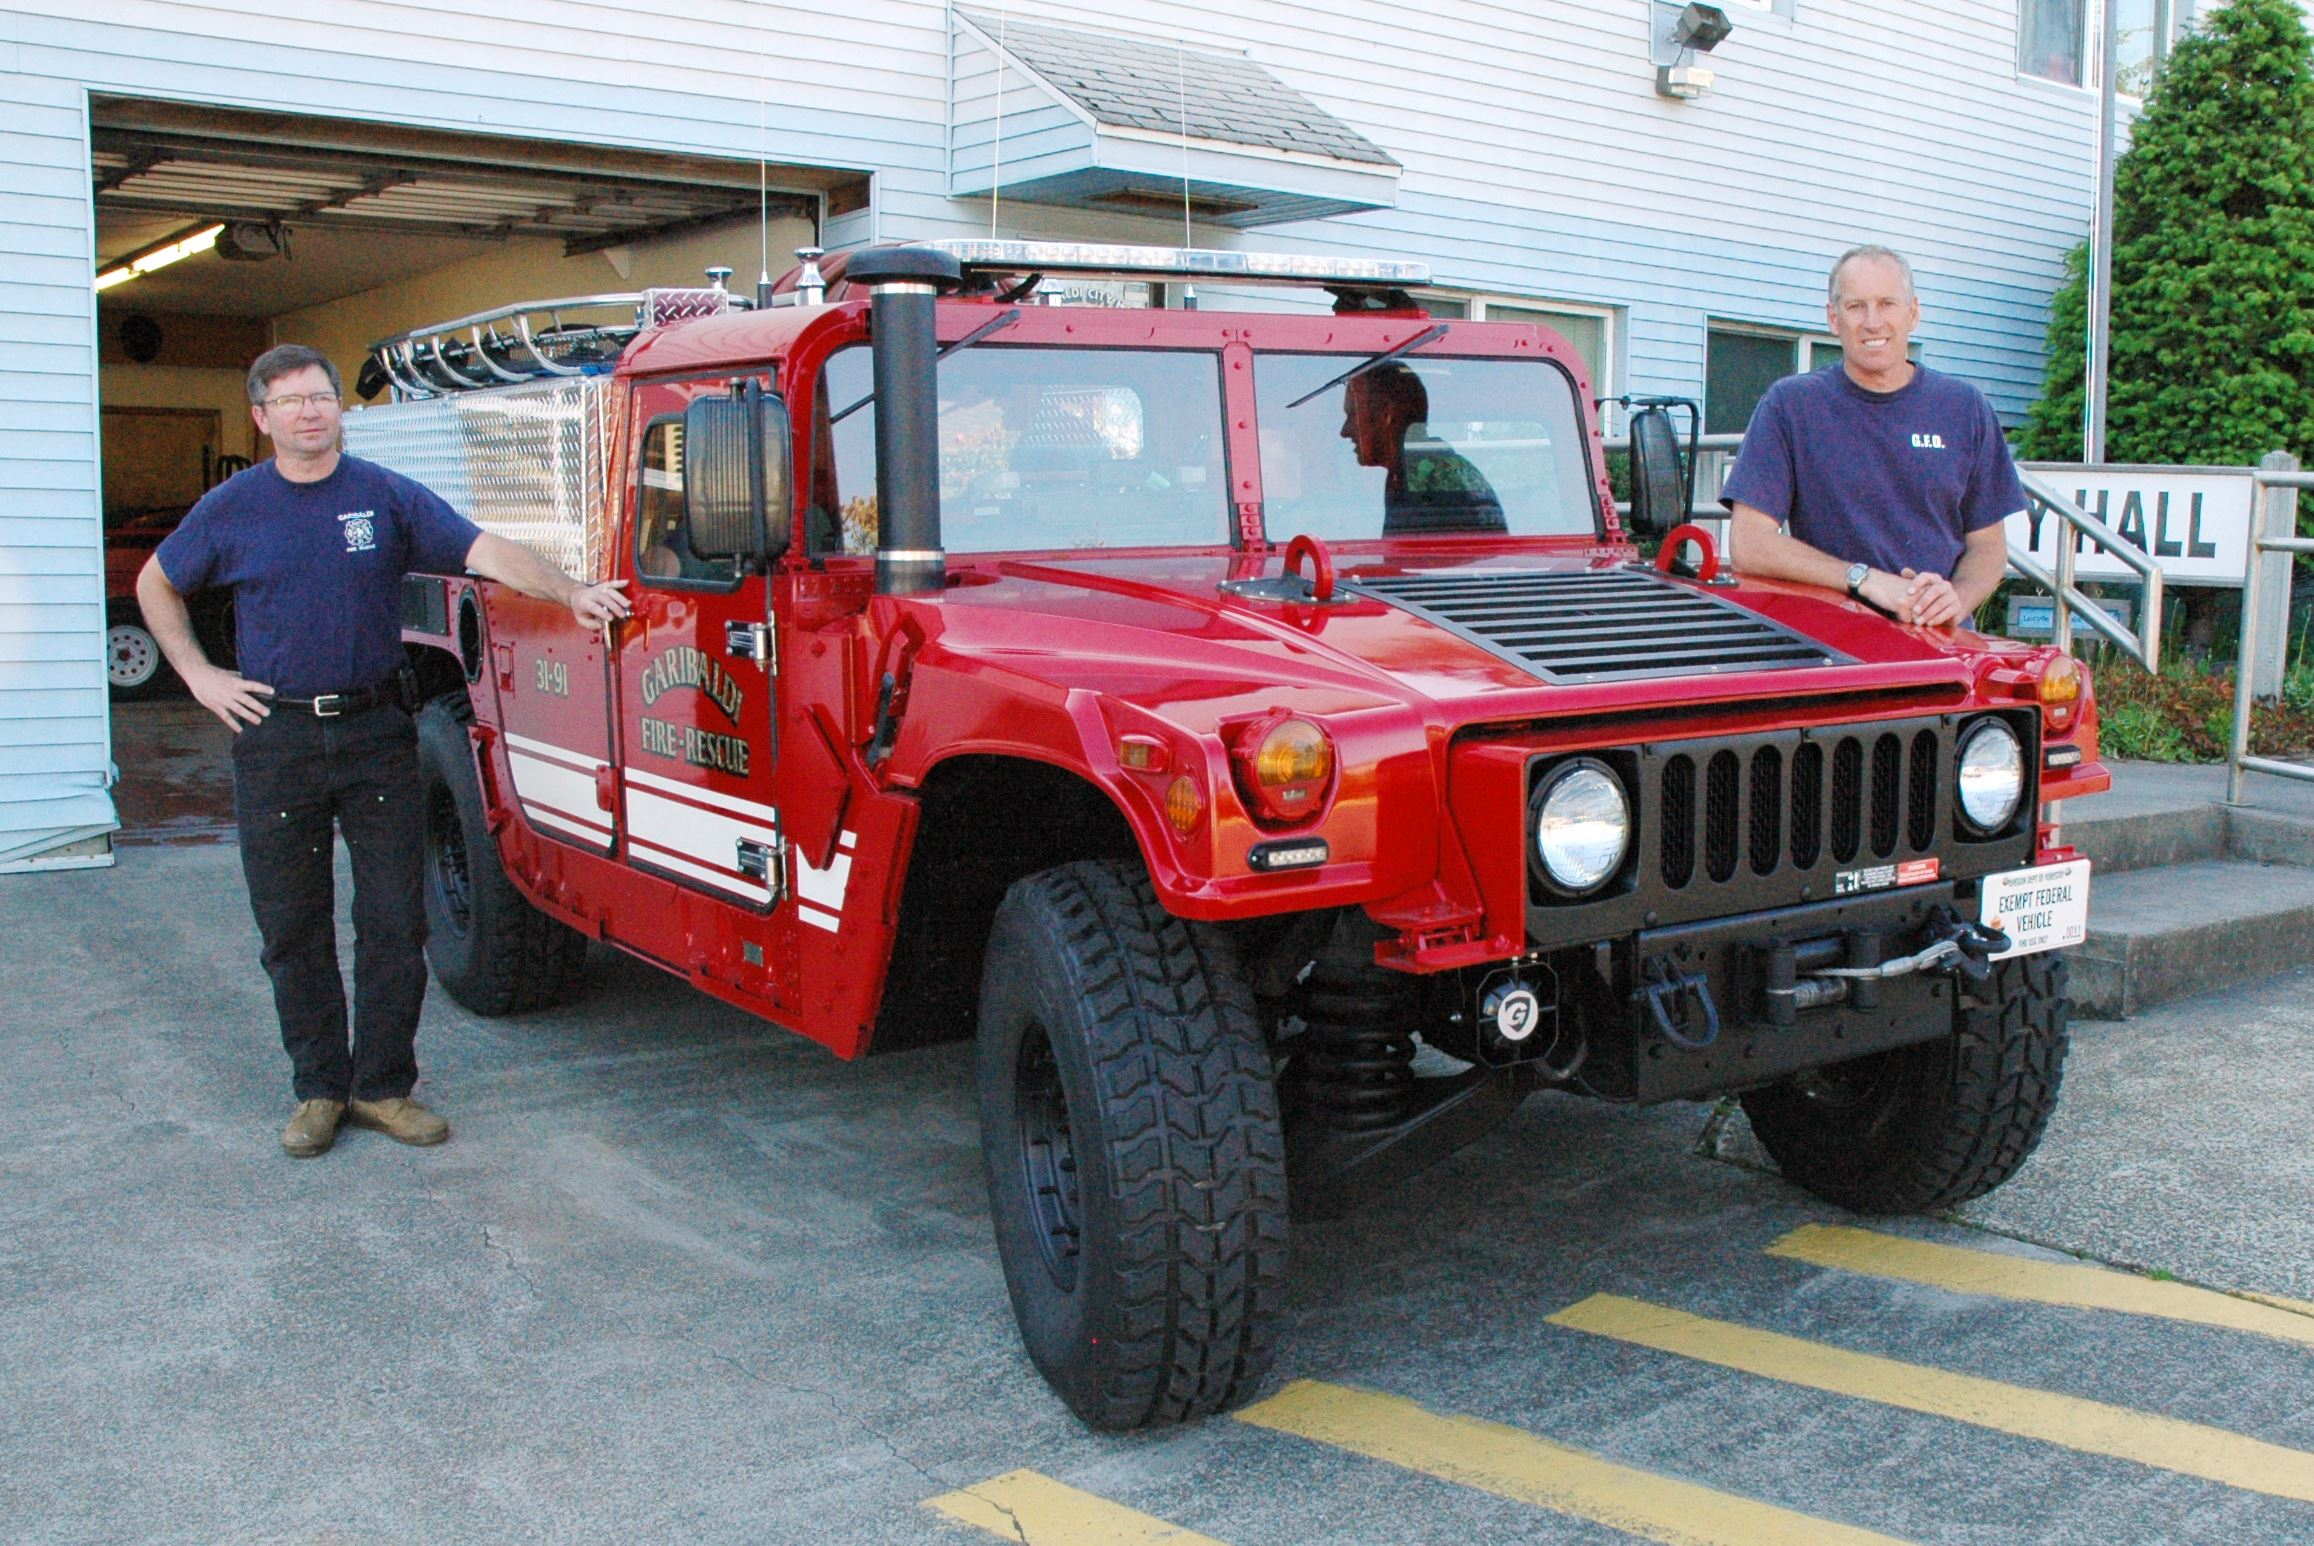 Fire fighters stand beside the Fire Department's Humvee